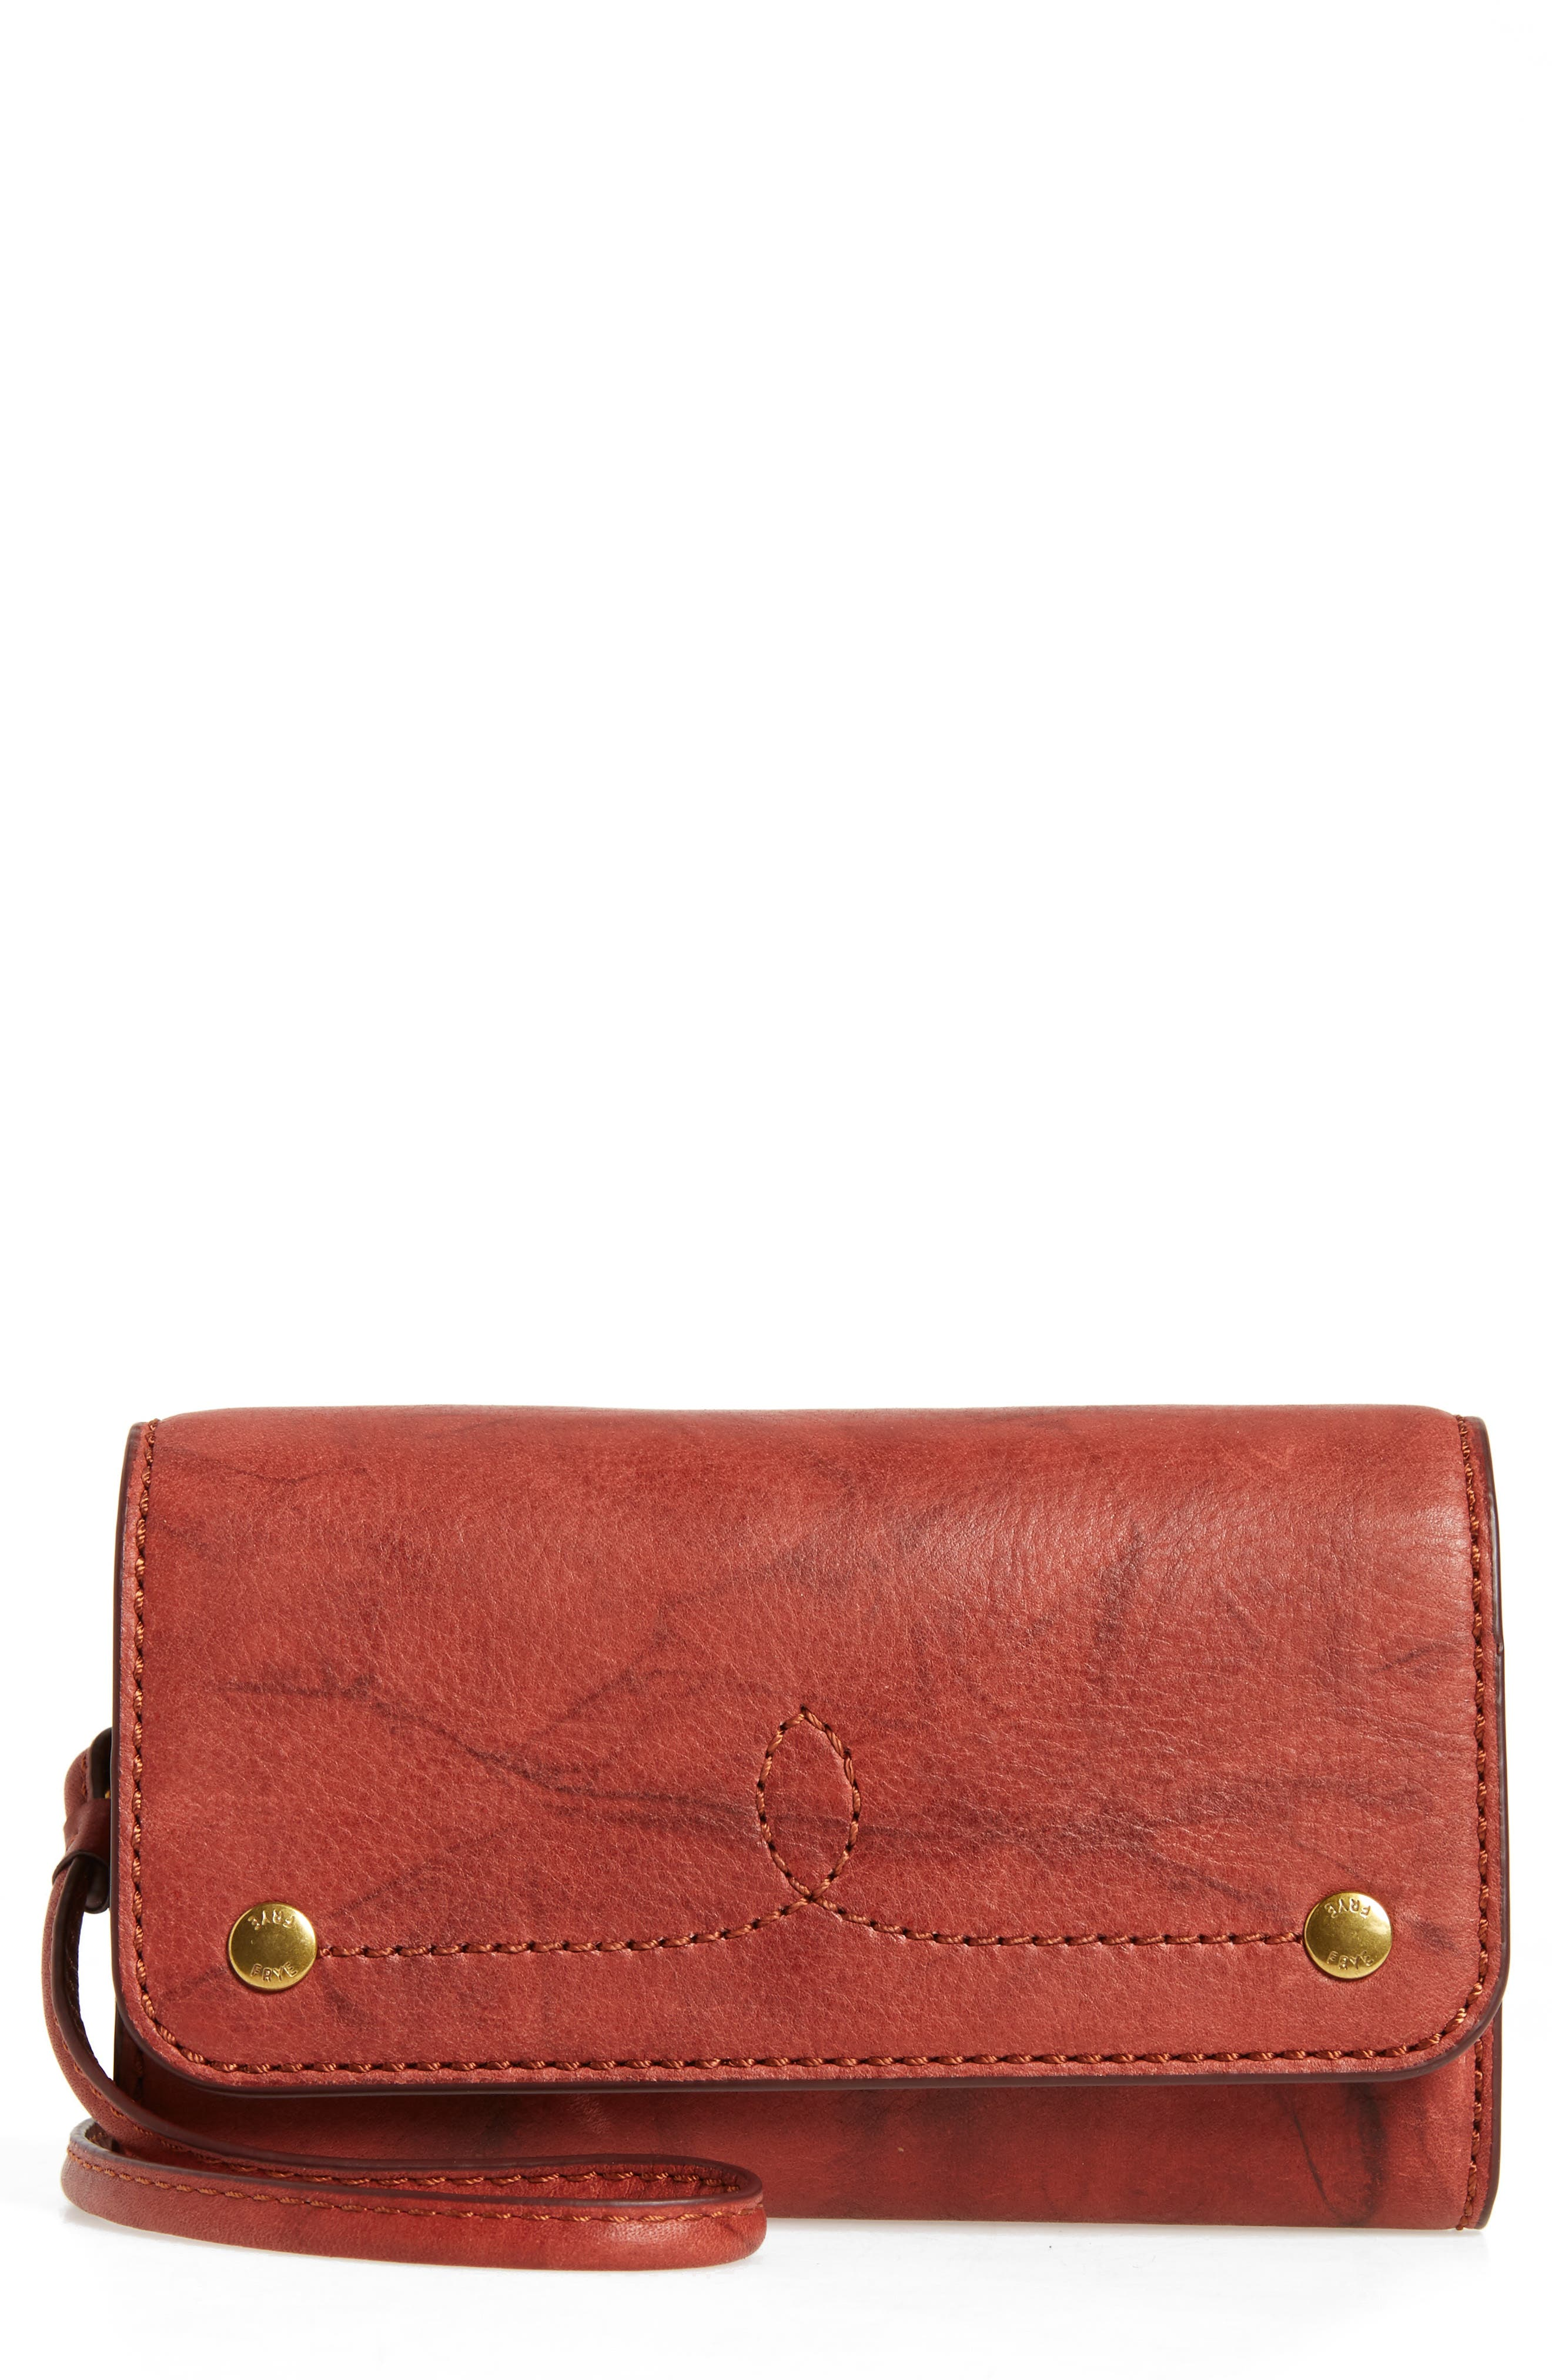 Alternate Image 1 Selected - Frye Campus Rivet Leather Smartphone Wallet with Crossbody Strap